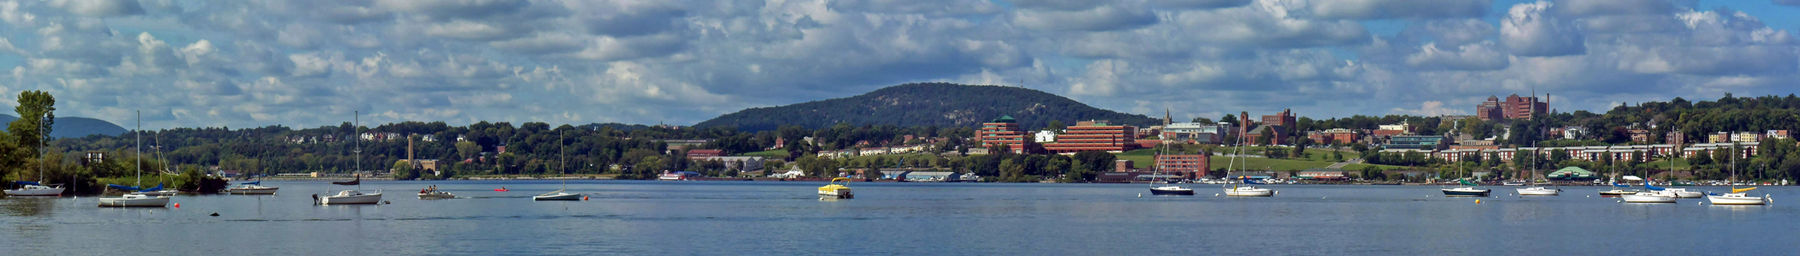 Newburgh and Snake Hill panorama from across Hudson River in Beacon, NY wikivoyage banner.jpg